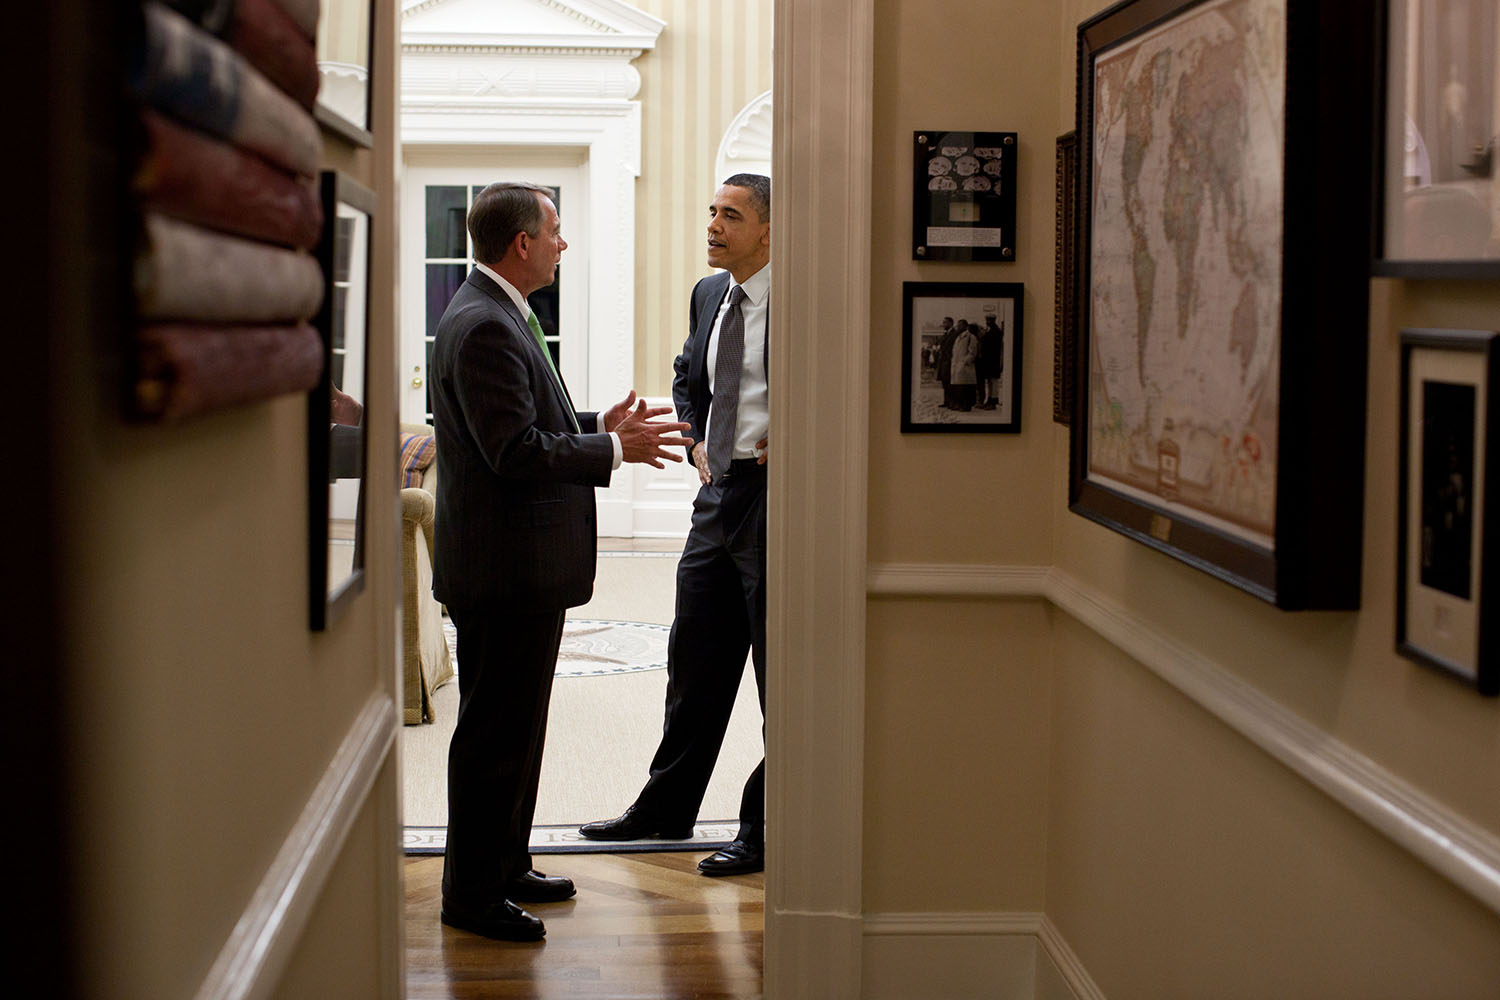 Image result for Corridors of White house